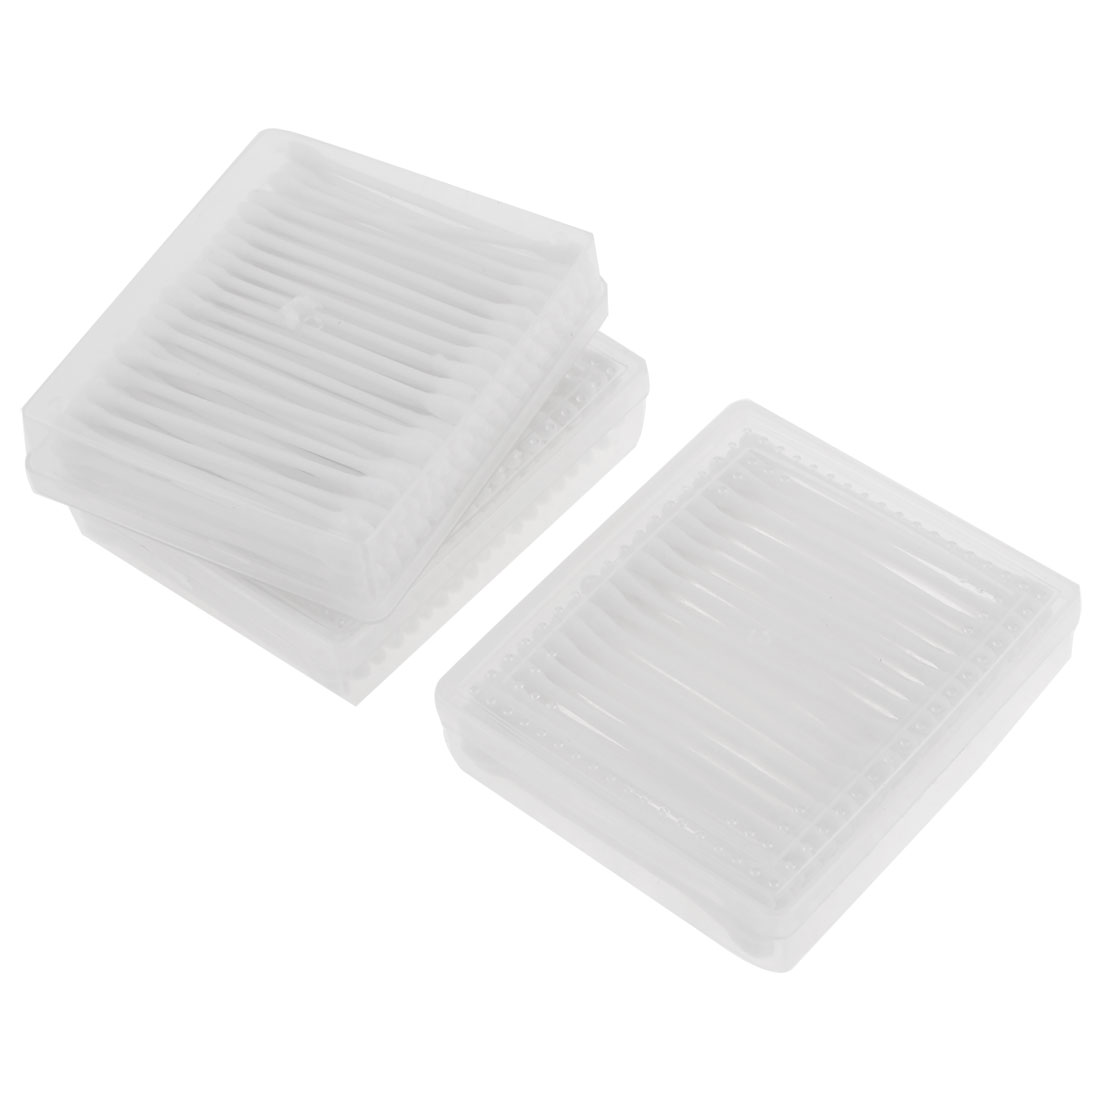 3 Case Double End White Plastic Tube Cotton Swab Stud Earwax Remover Picks